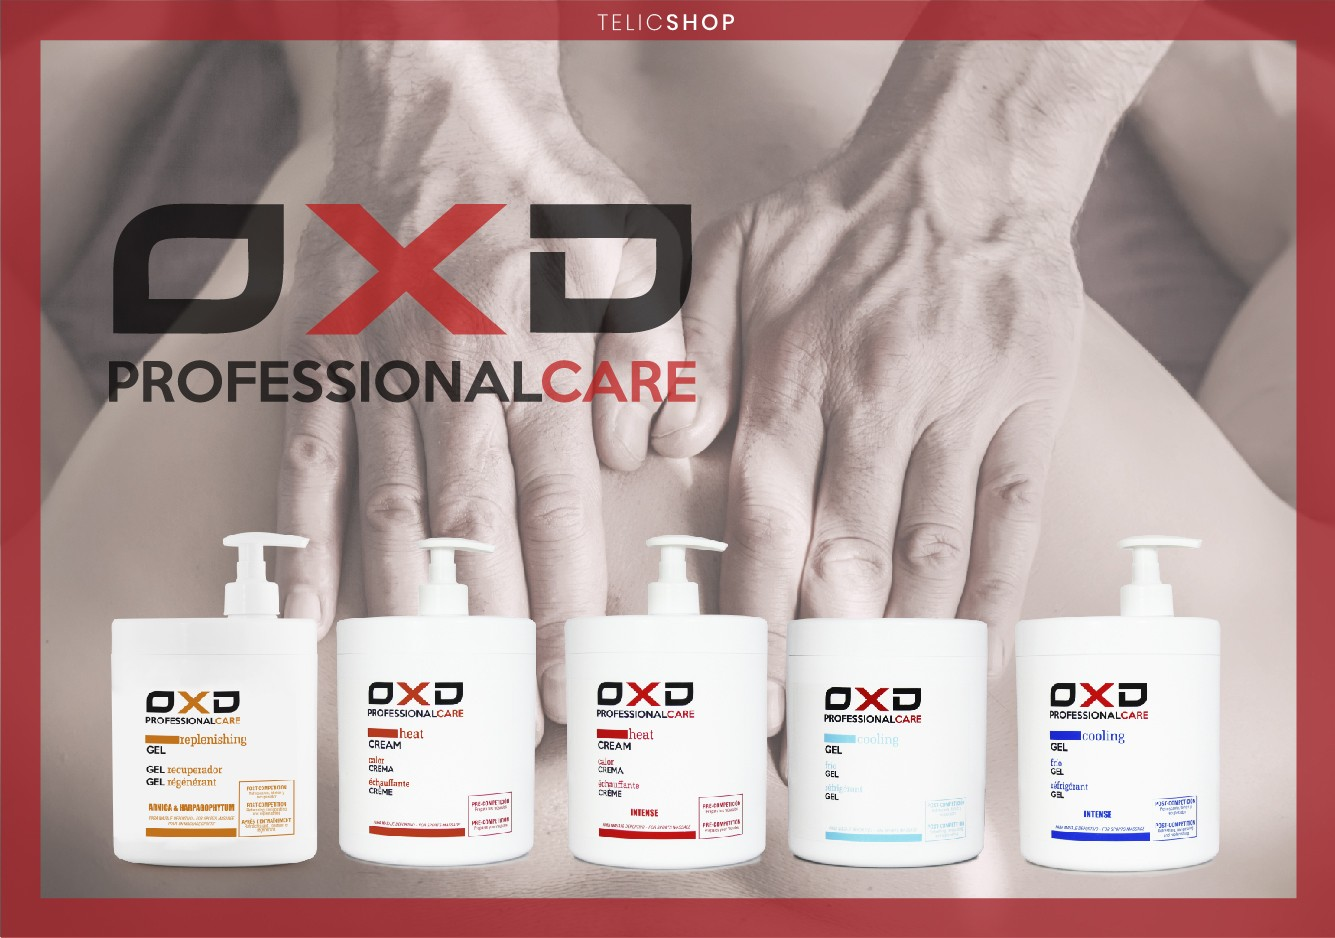 PRODUCTOS OXDPRO · 1 L